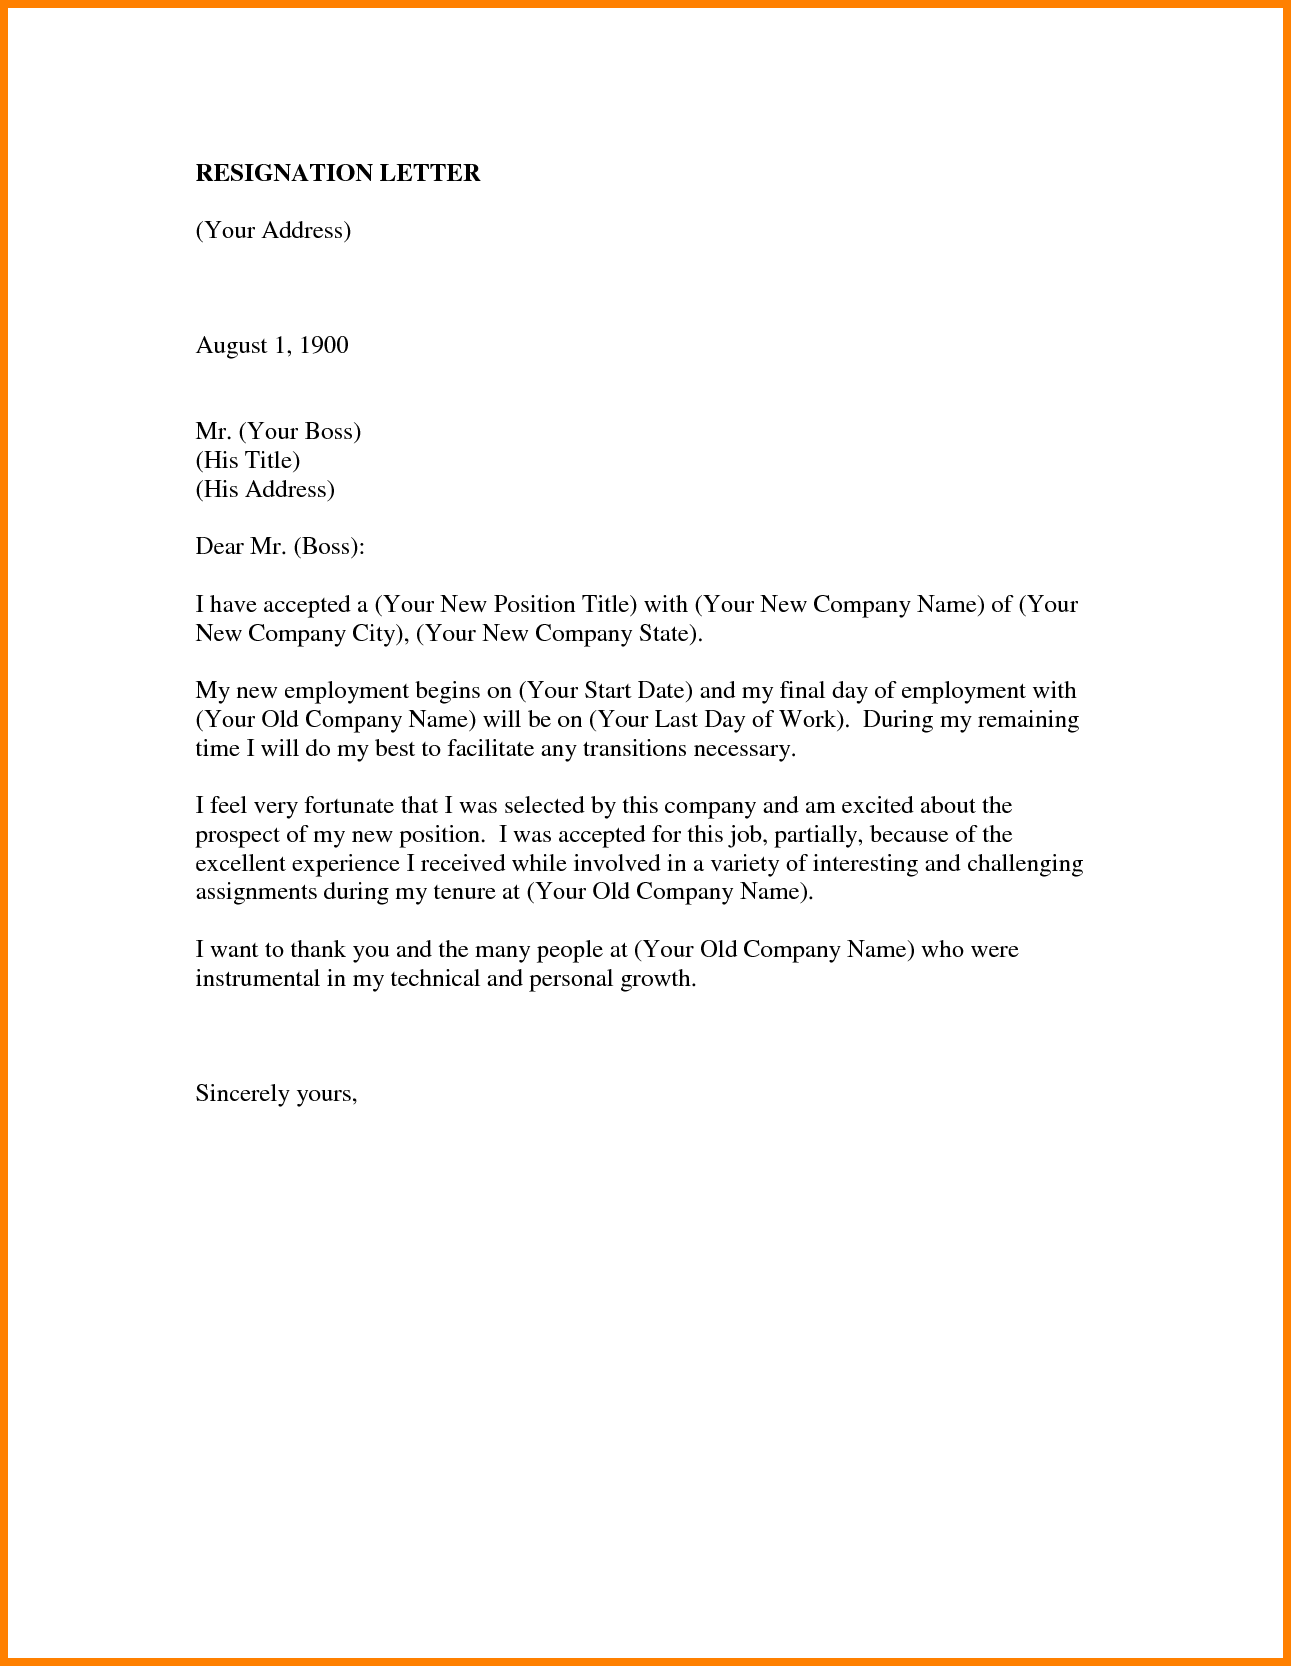 Job Resigning Letter Format Sample Ledger Paper Resignation And